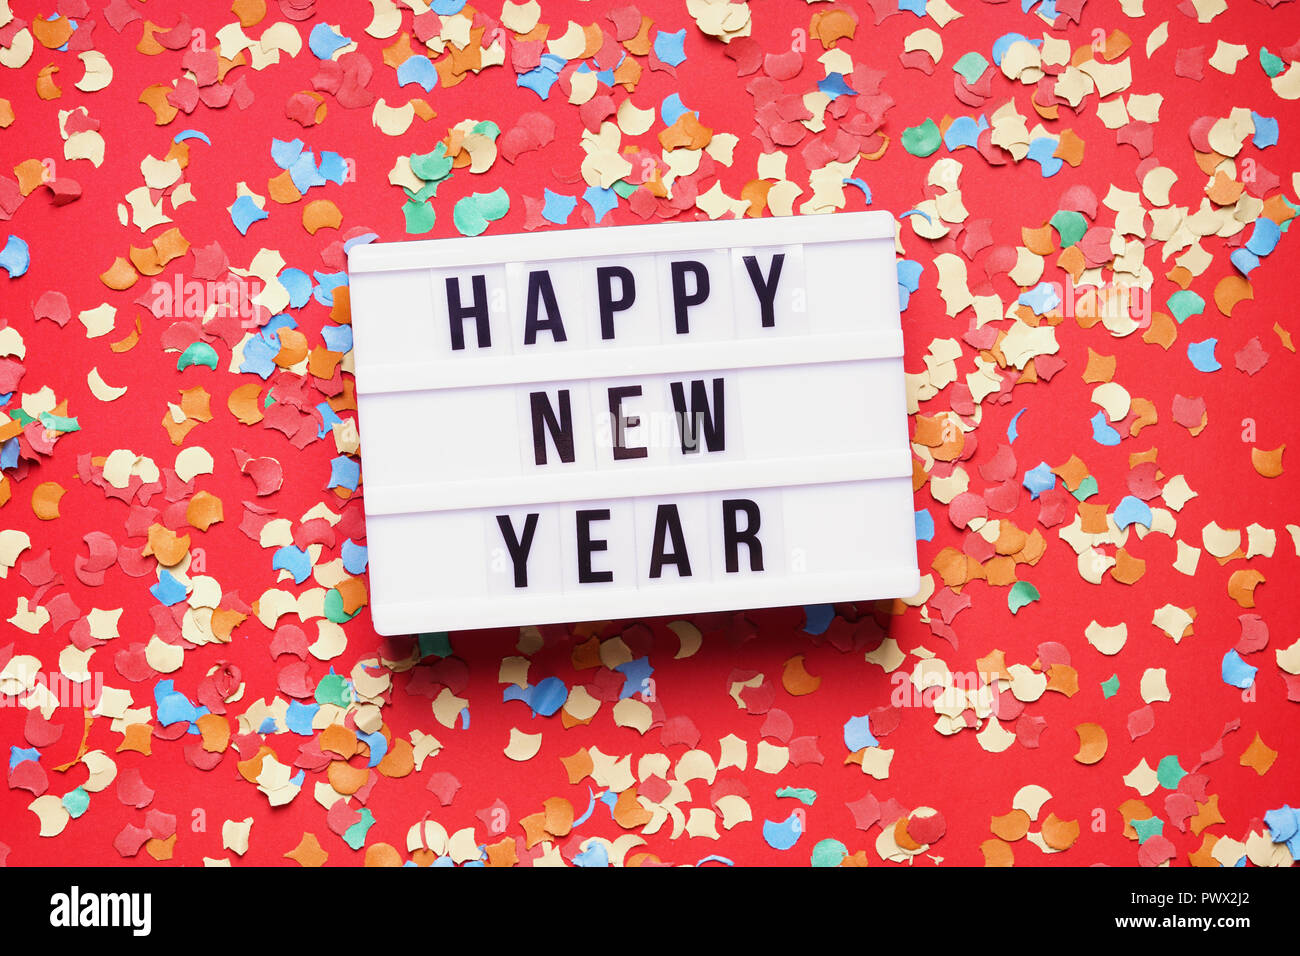 happy new year party celebration flat lay with confetti on red background - Stock Image